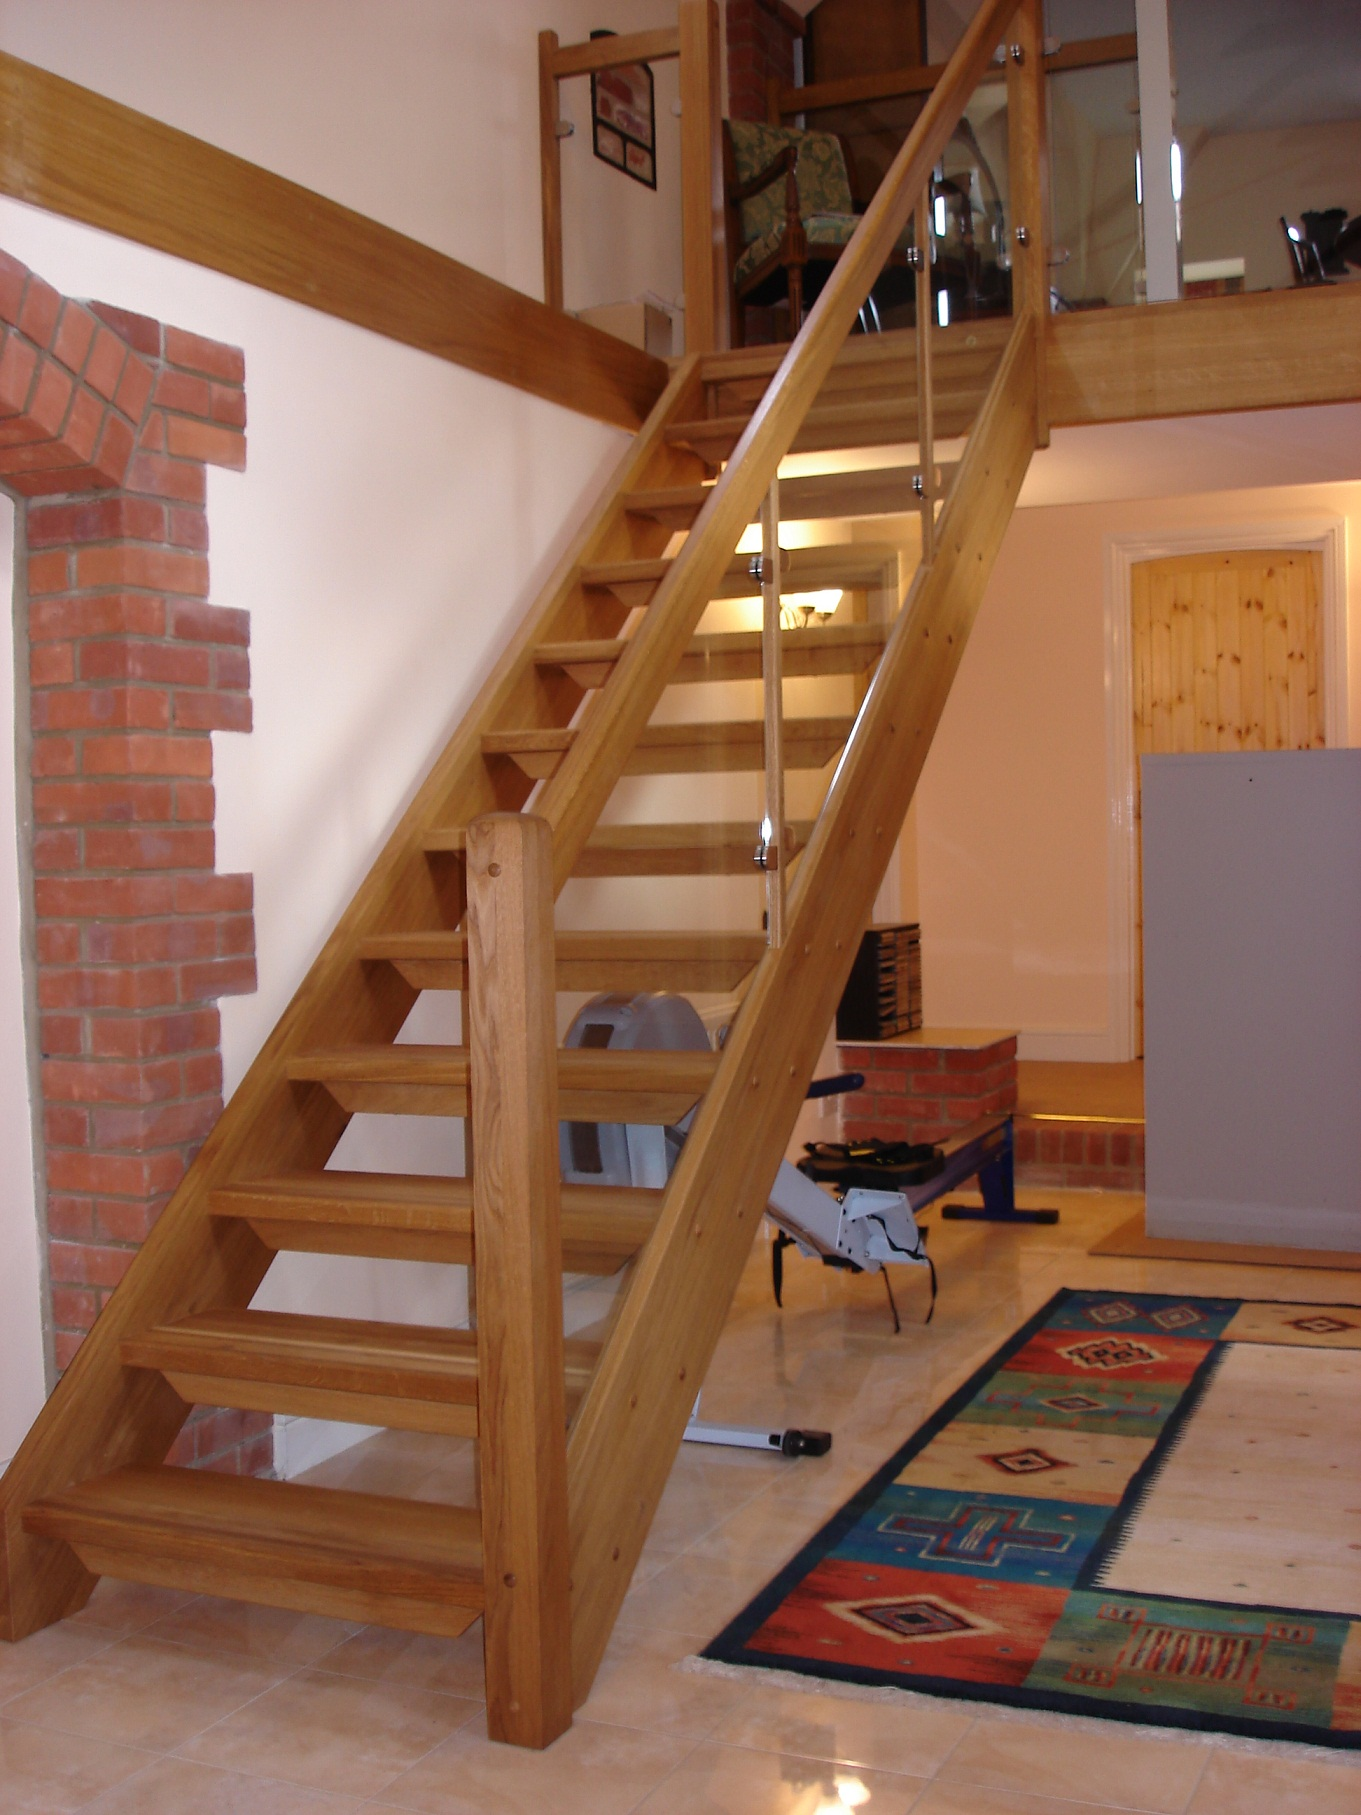 Calculation of the length of the stairs to the second floor